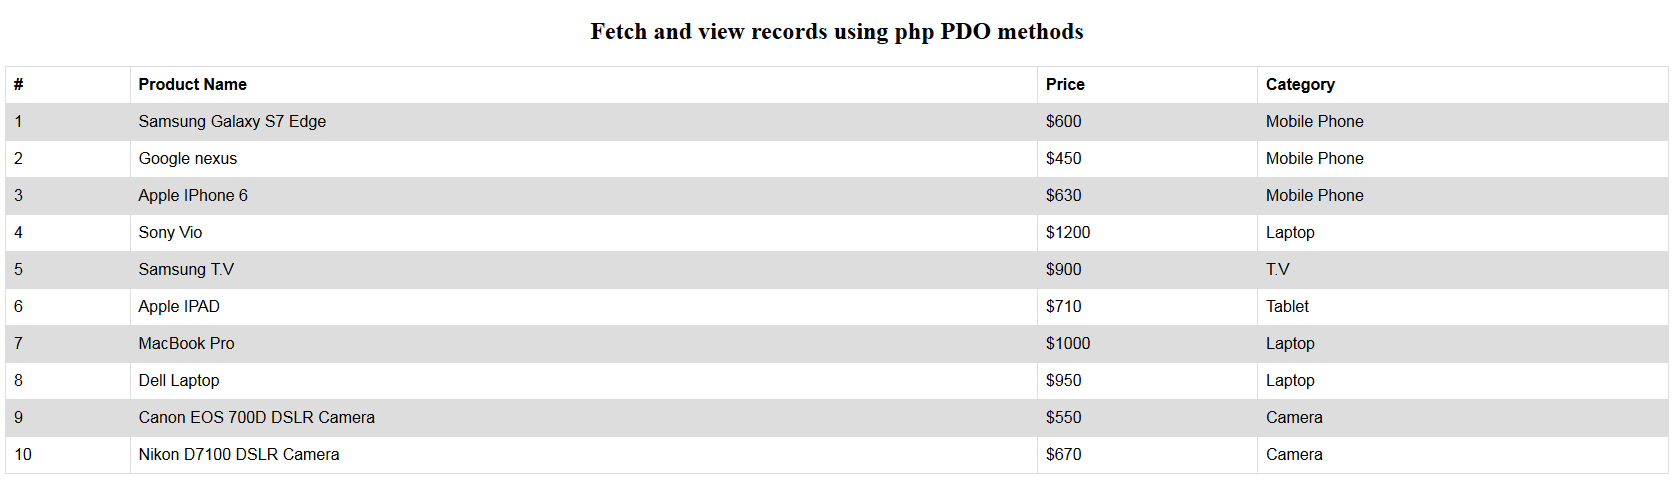 php pdo fetch all records and display in while loop